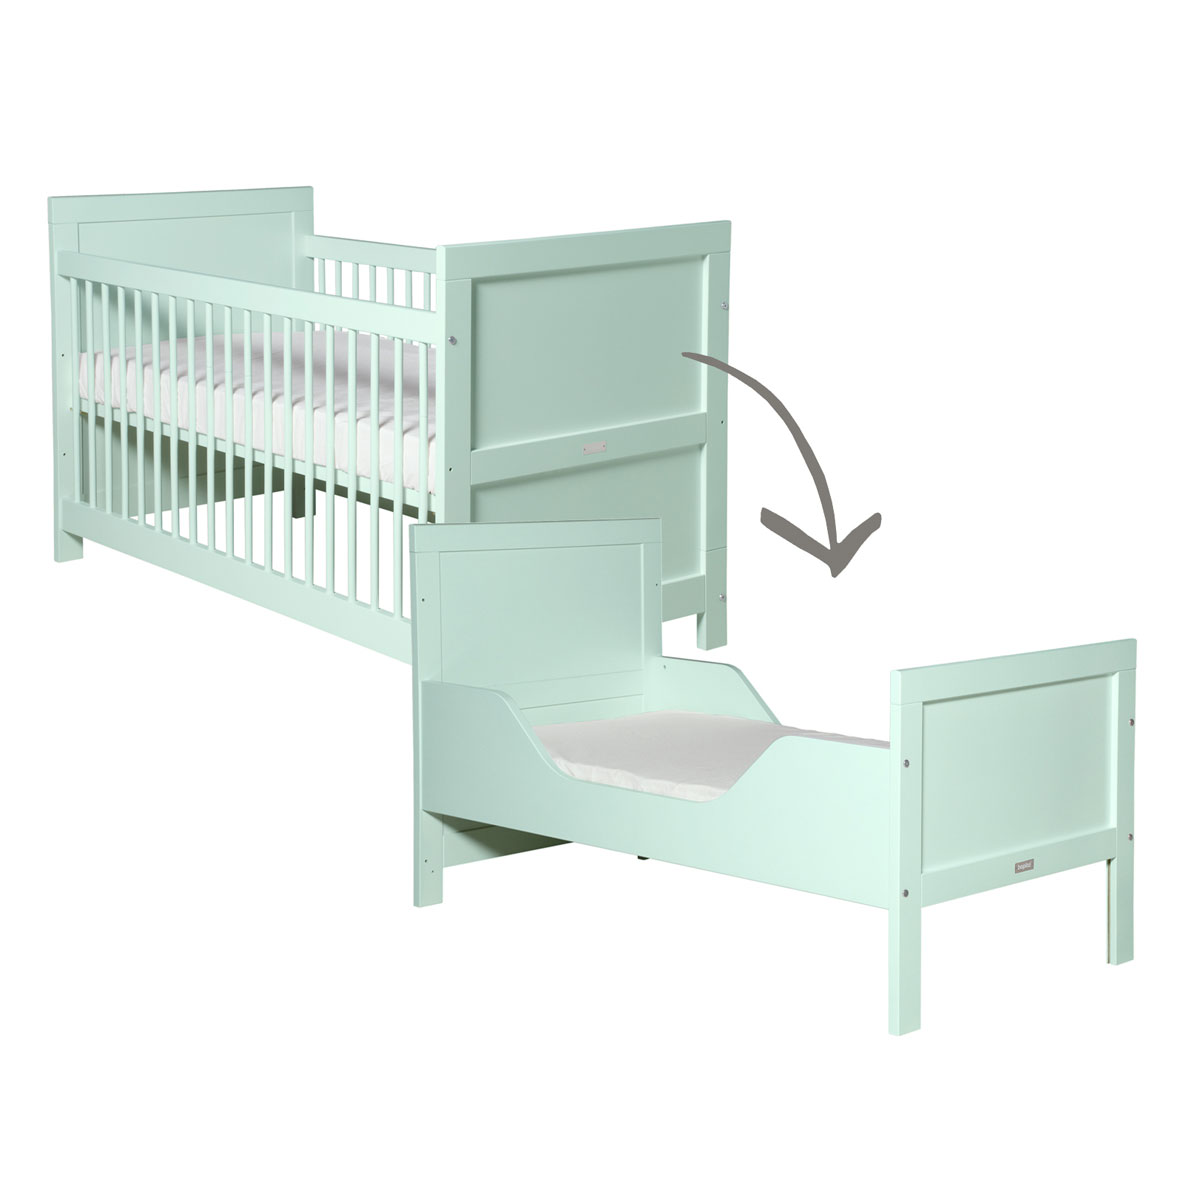 Babybett 70x140 Bopita Mix And Match Kinderbett Mint 70x140 Portofrei